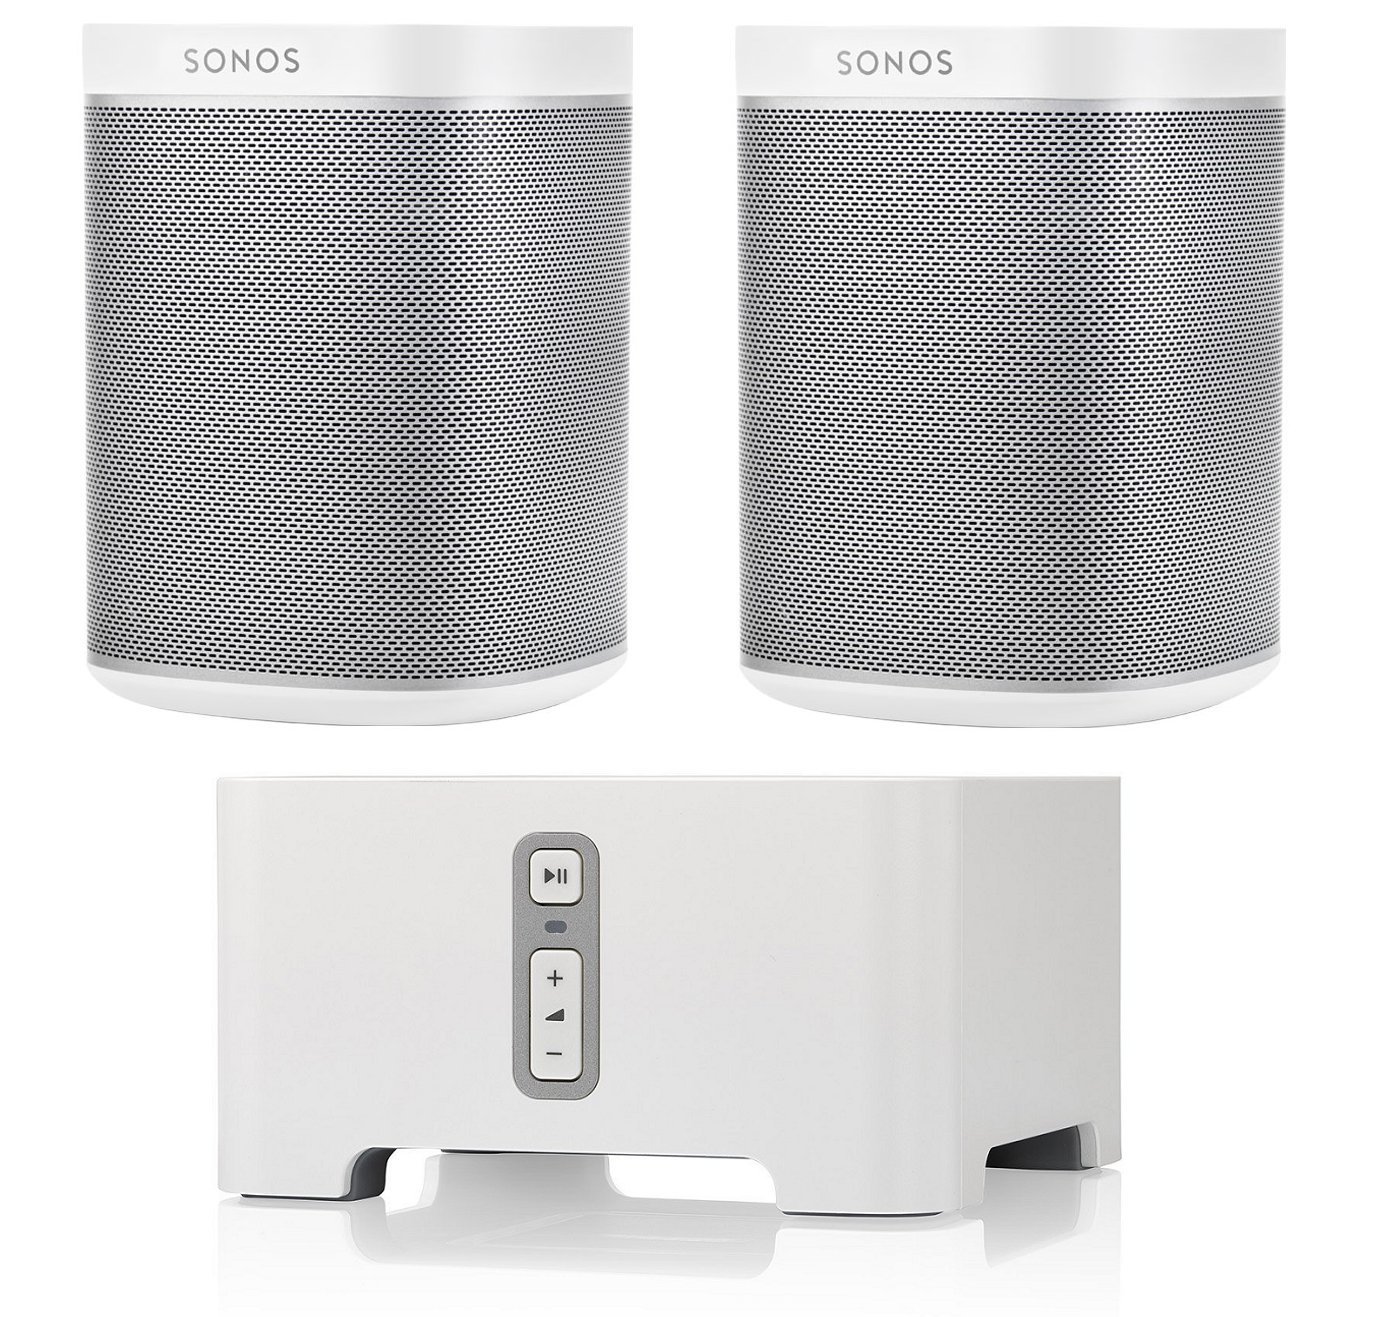 Sonos CONNECT Wireless Receiver for Streaming Music Bundle & Sonos PLAY:1 Wireless Speaker, Pair - White by Sonos